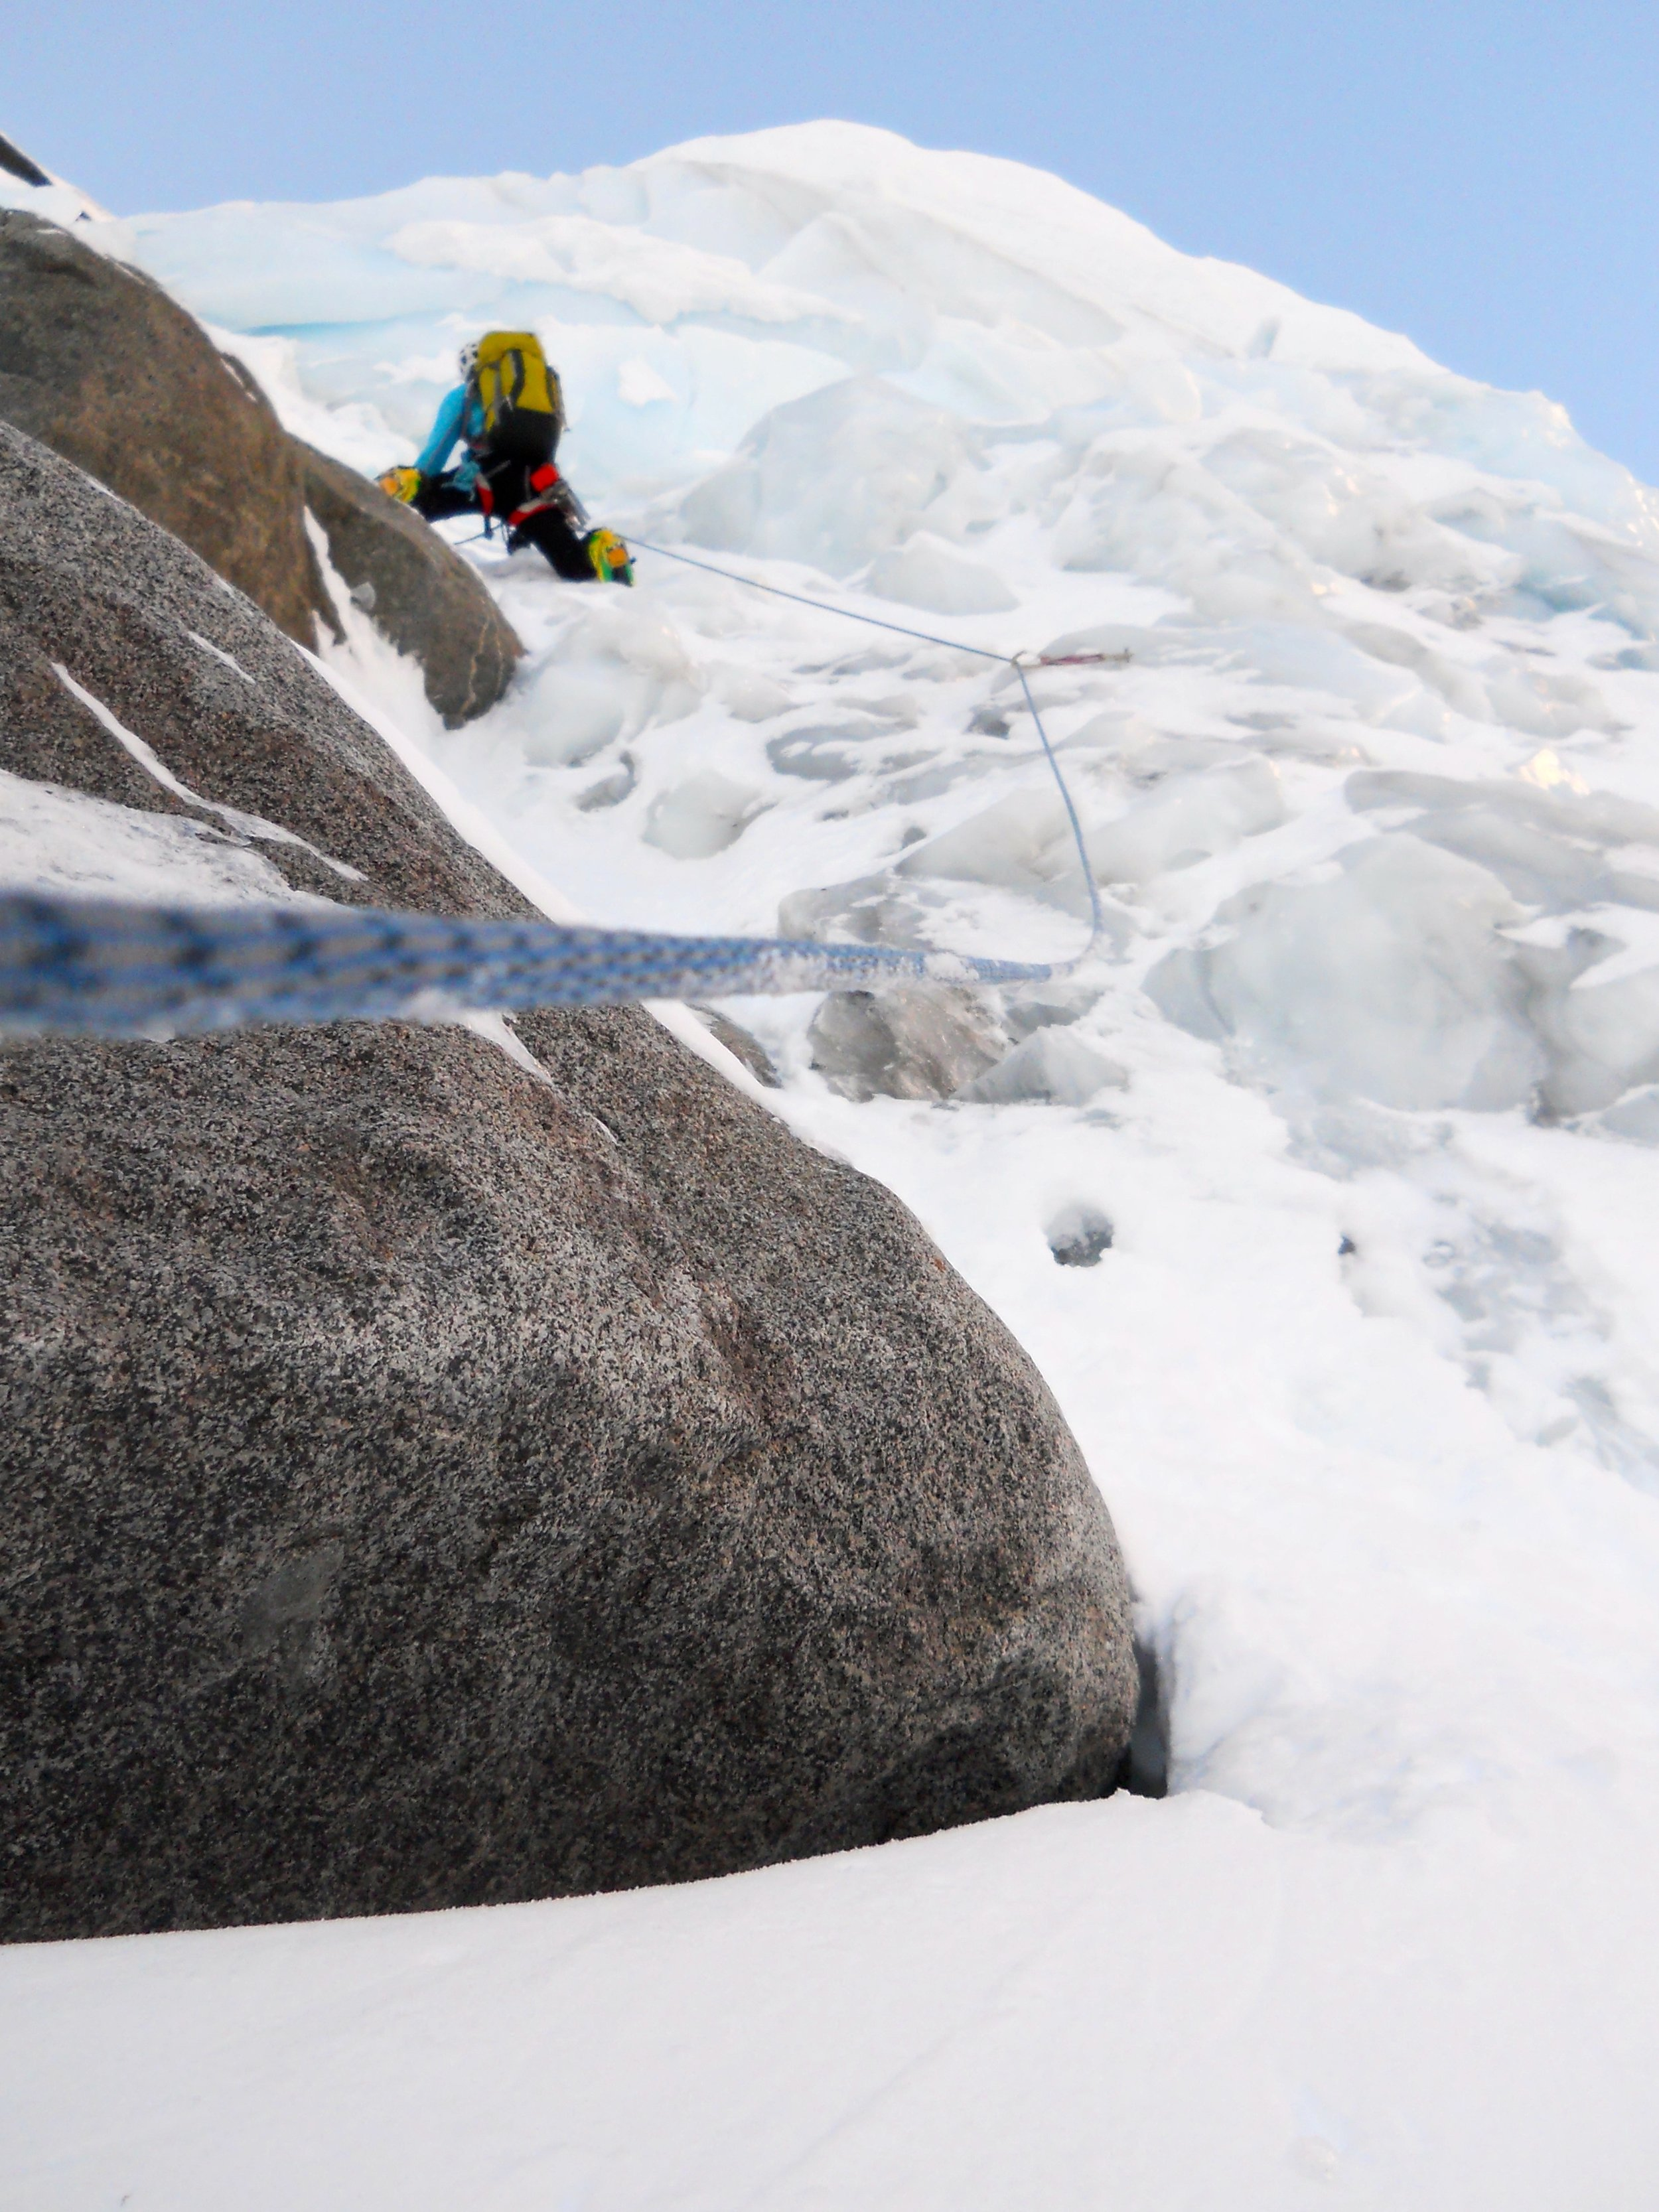 Heading up the ice step